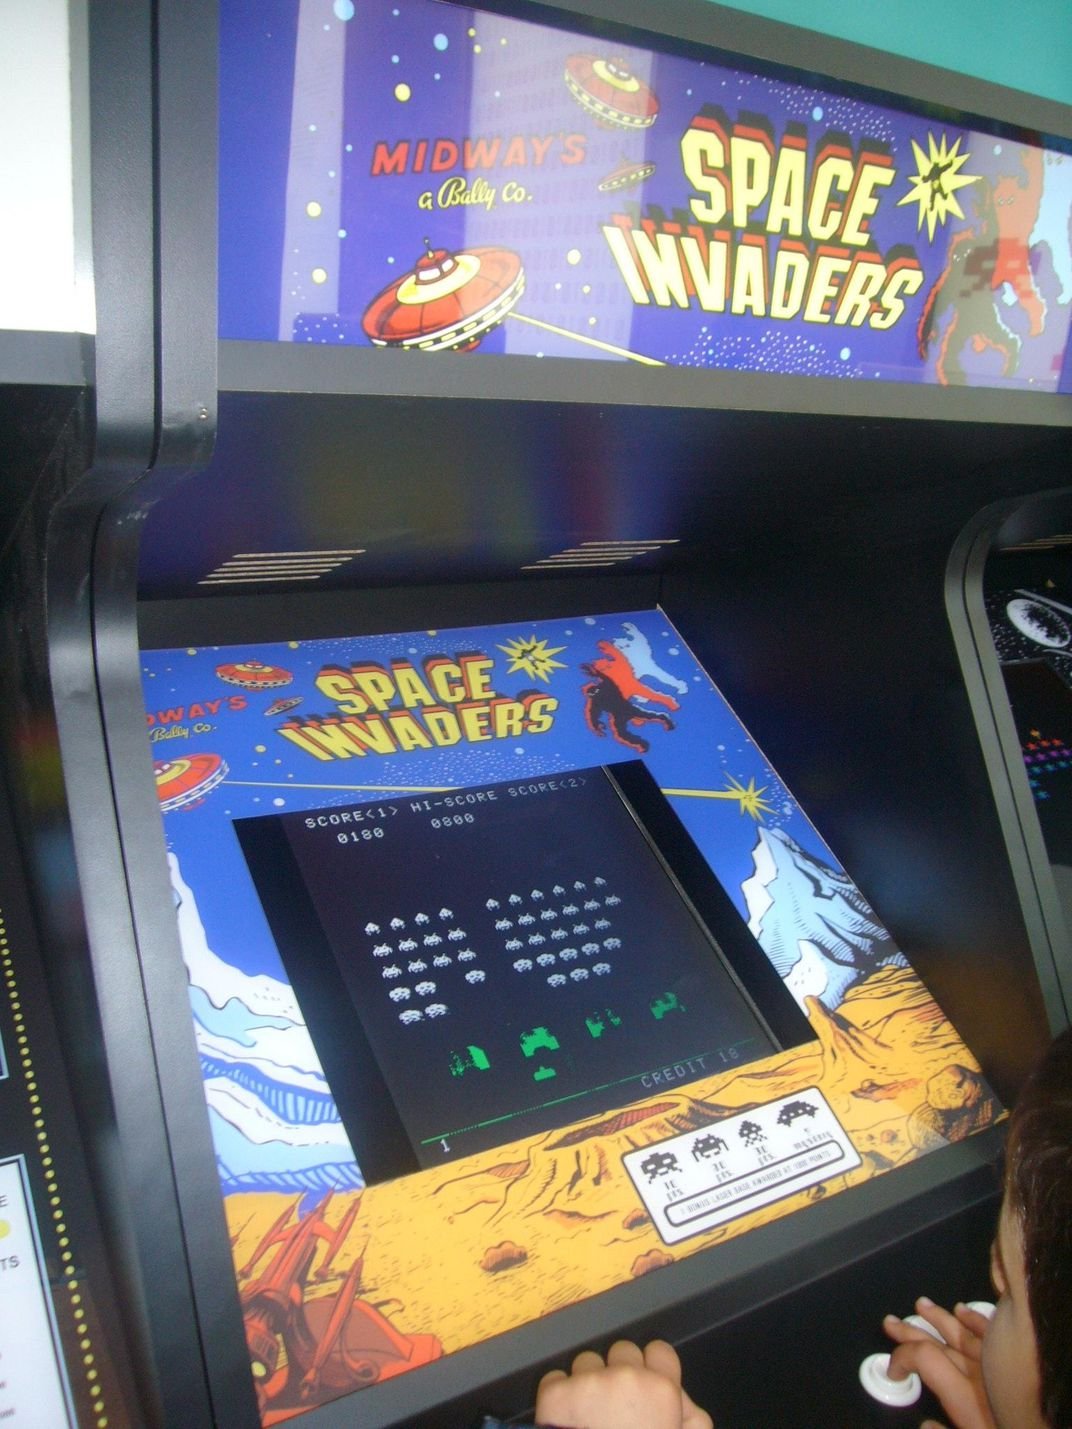 The iconic shooting game in its original stand-up arcade form.